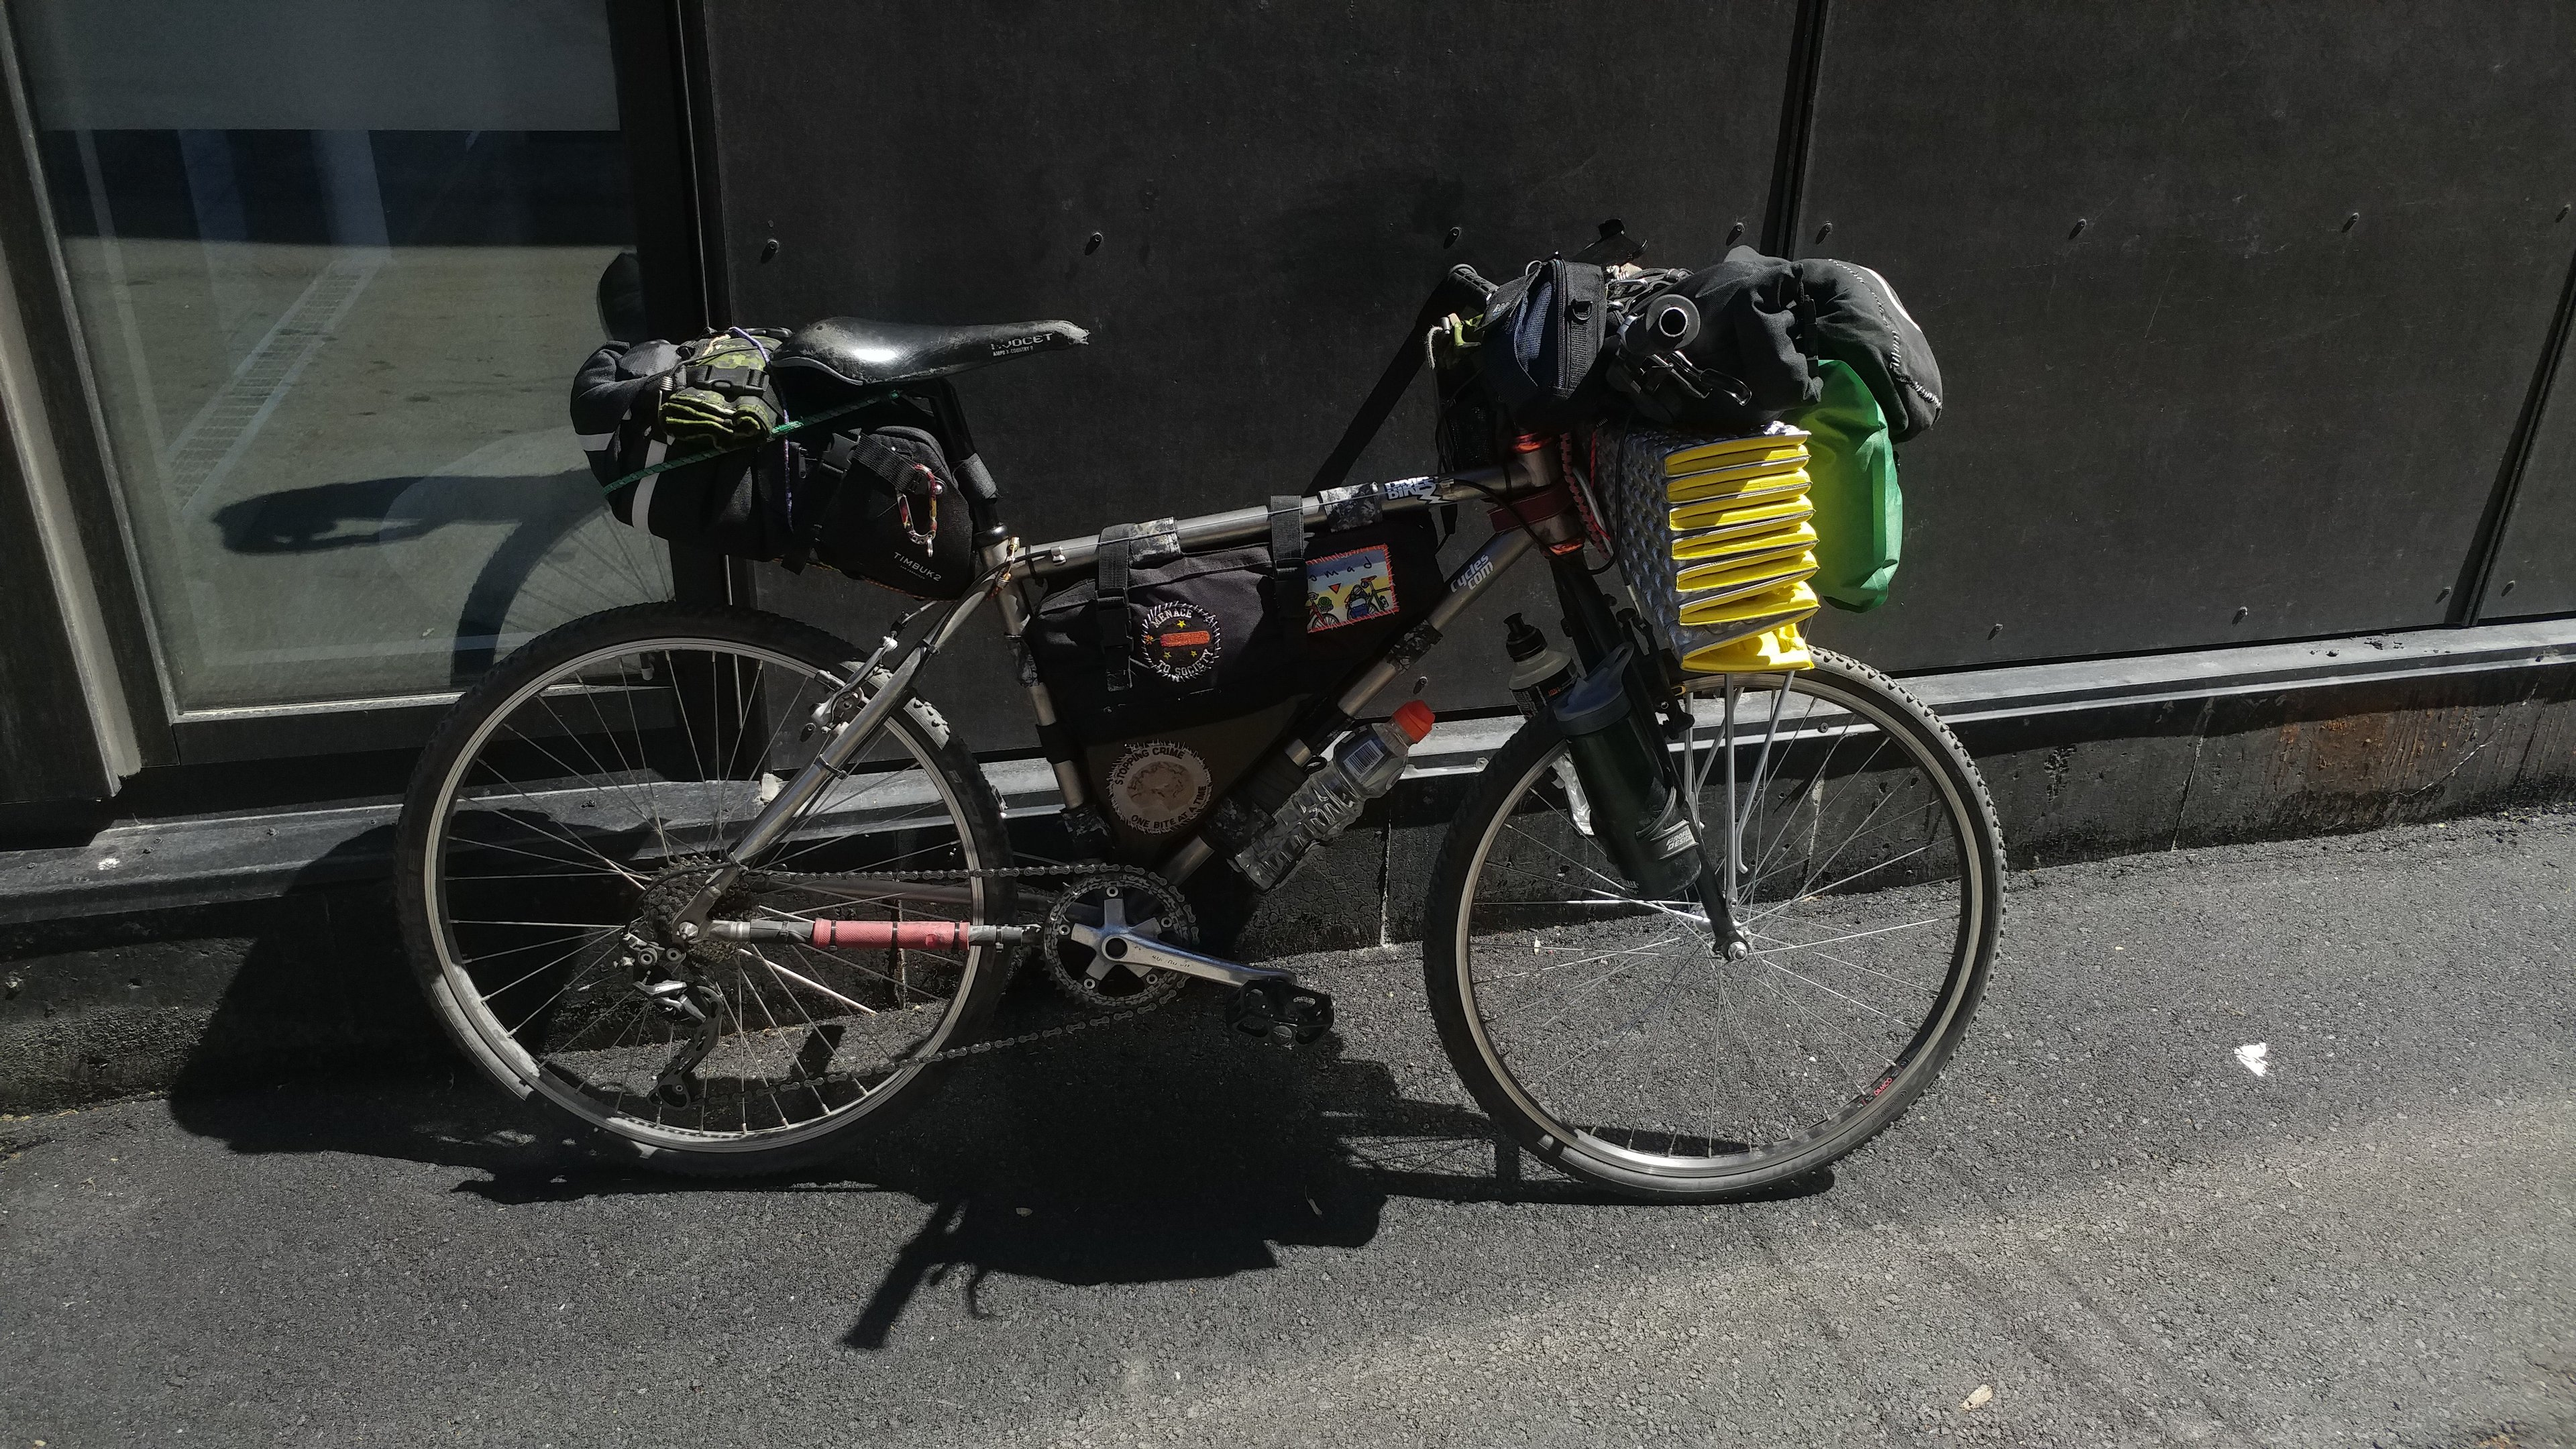 img_20180512_142635-jpg.43083_Picture of your loaded bicycle_Bike Touring_Squat the Planet_12:59 PM